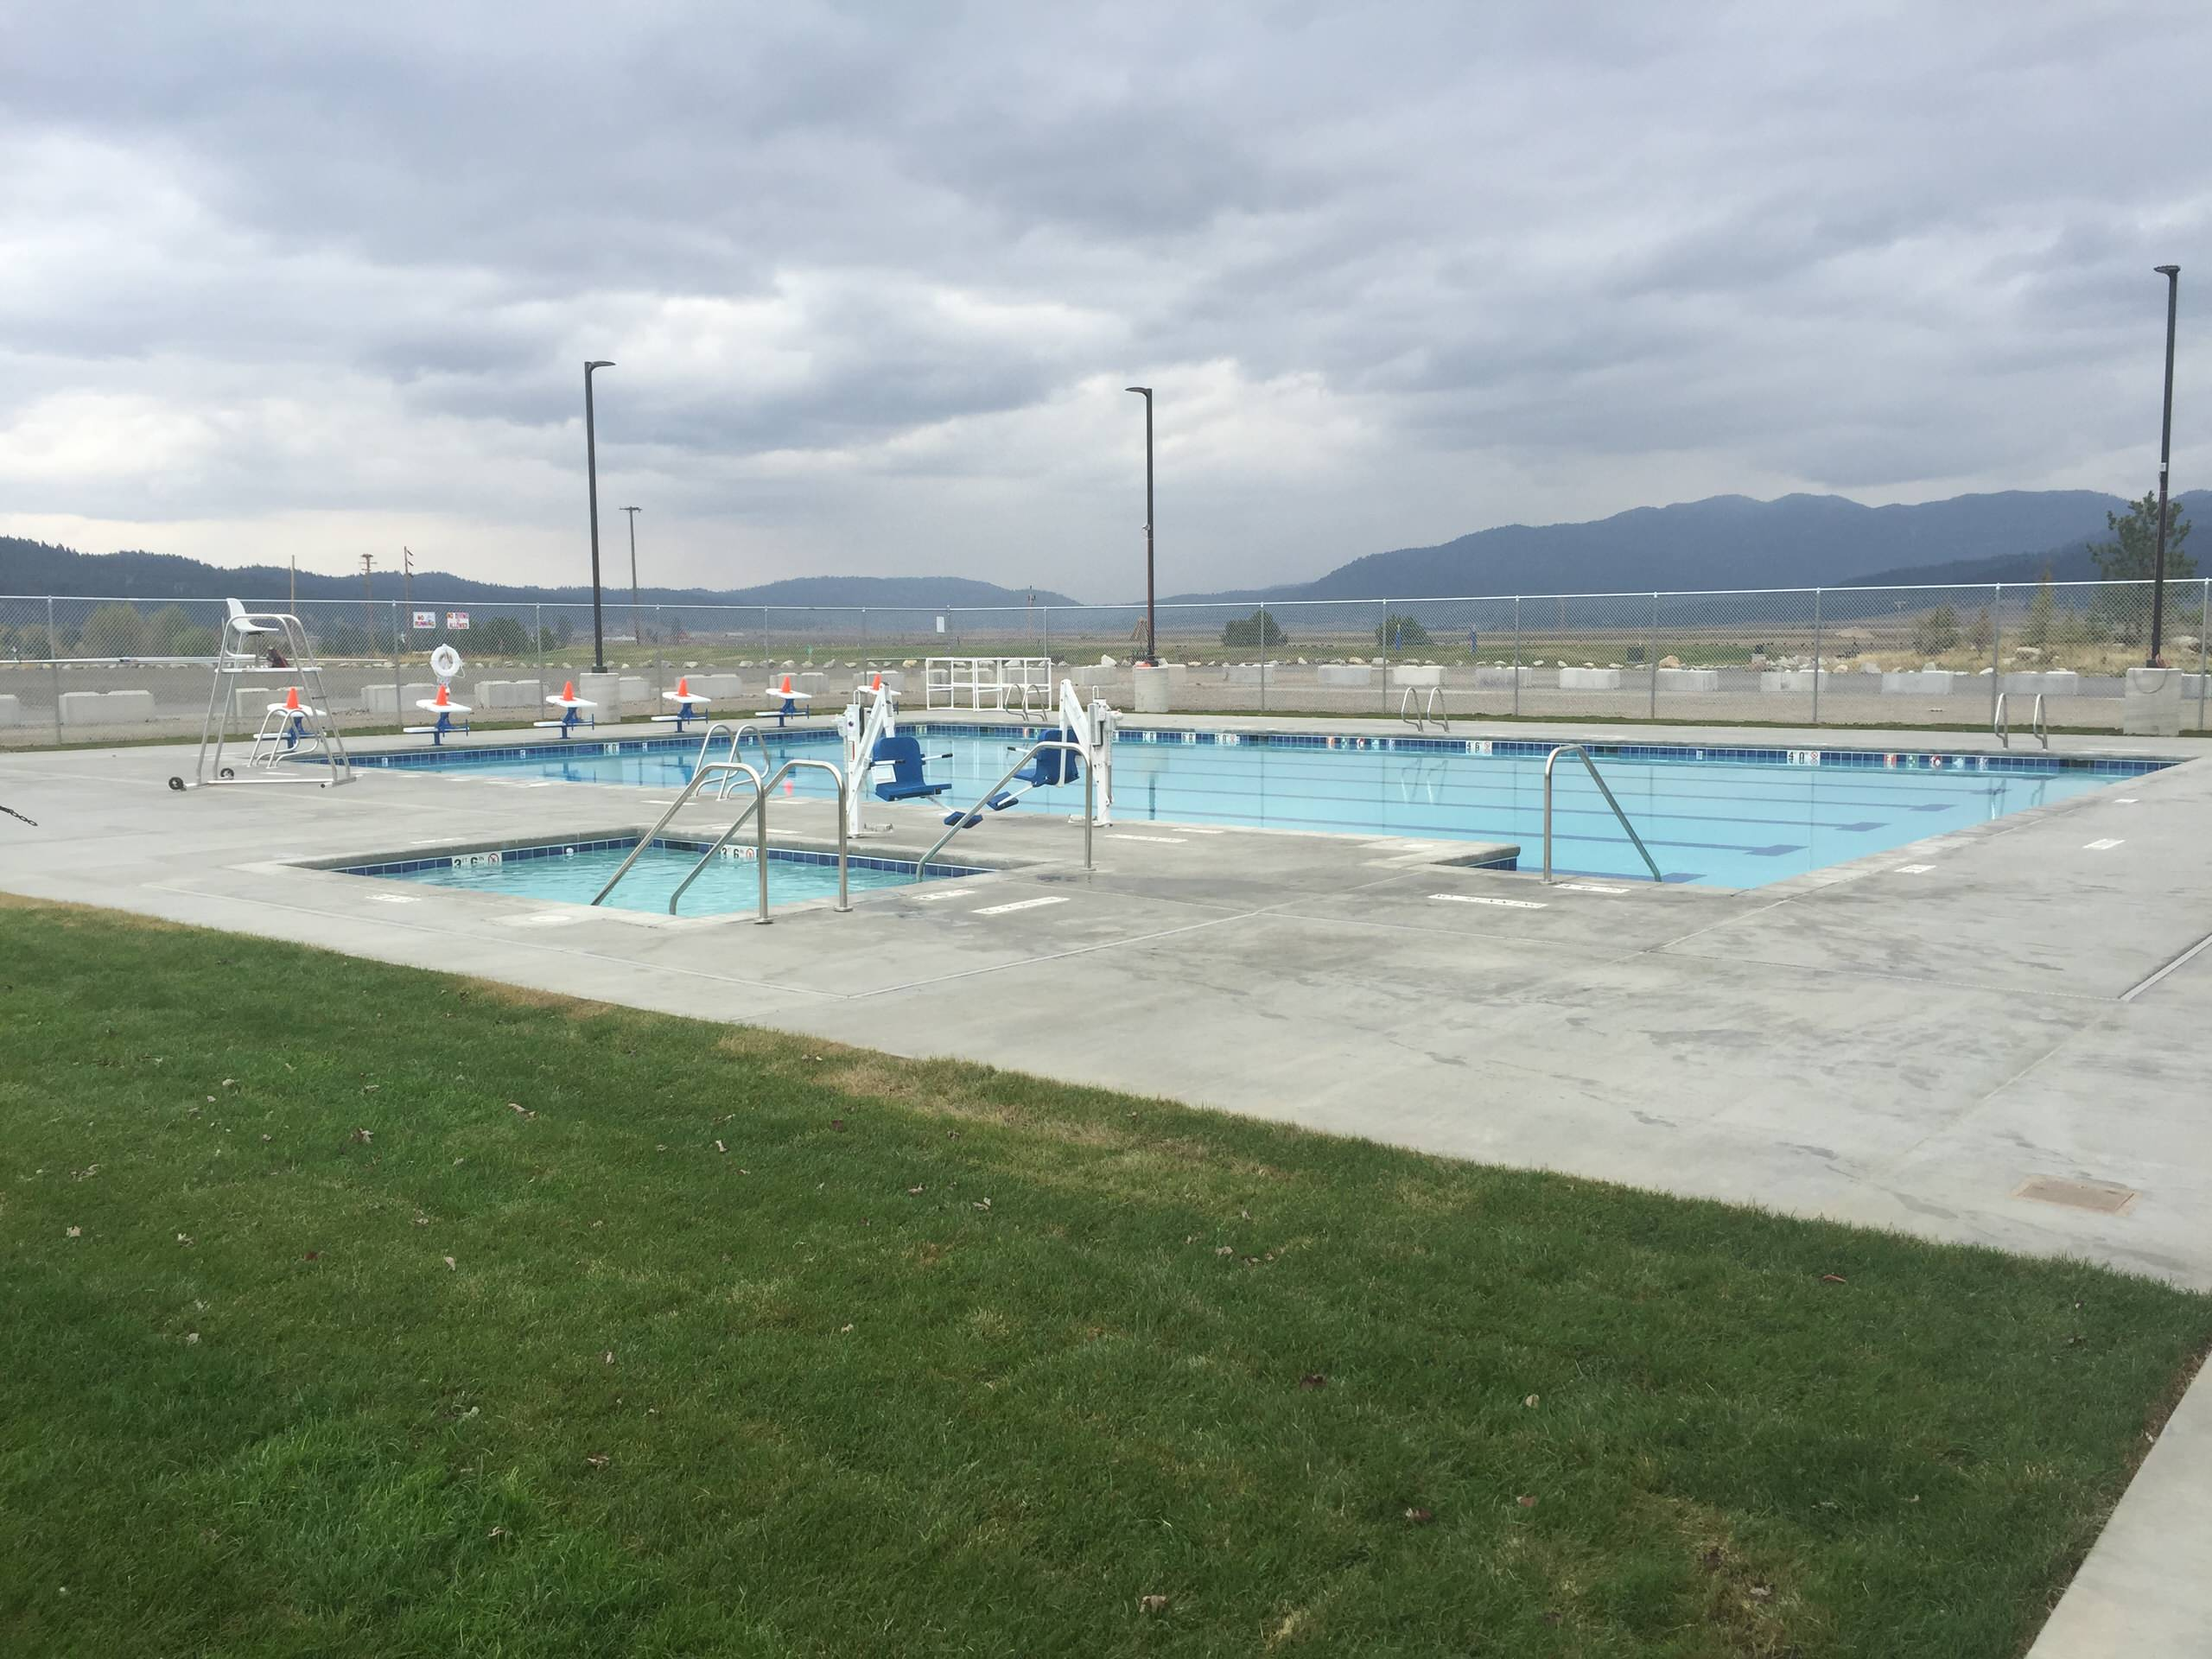 Cascade Aquatic Center